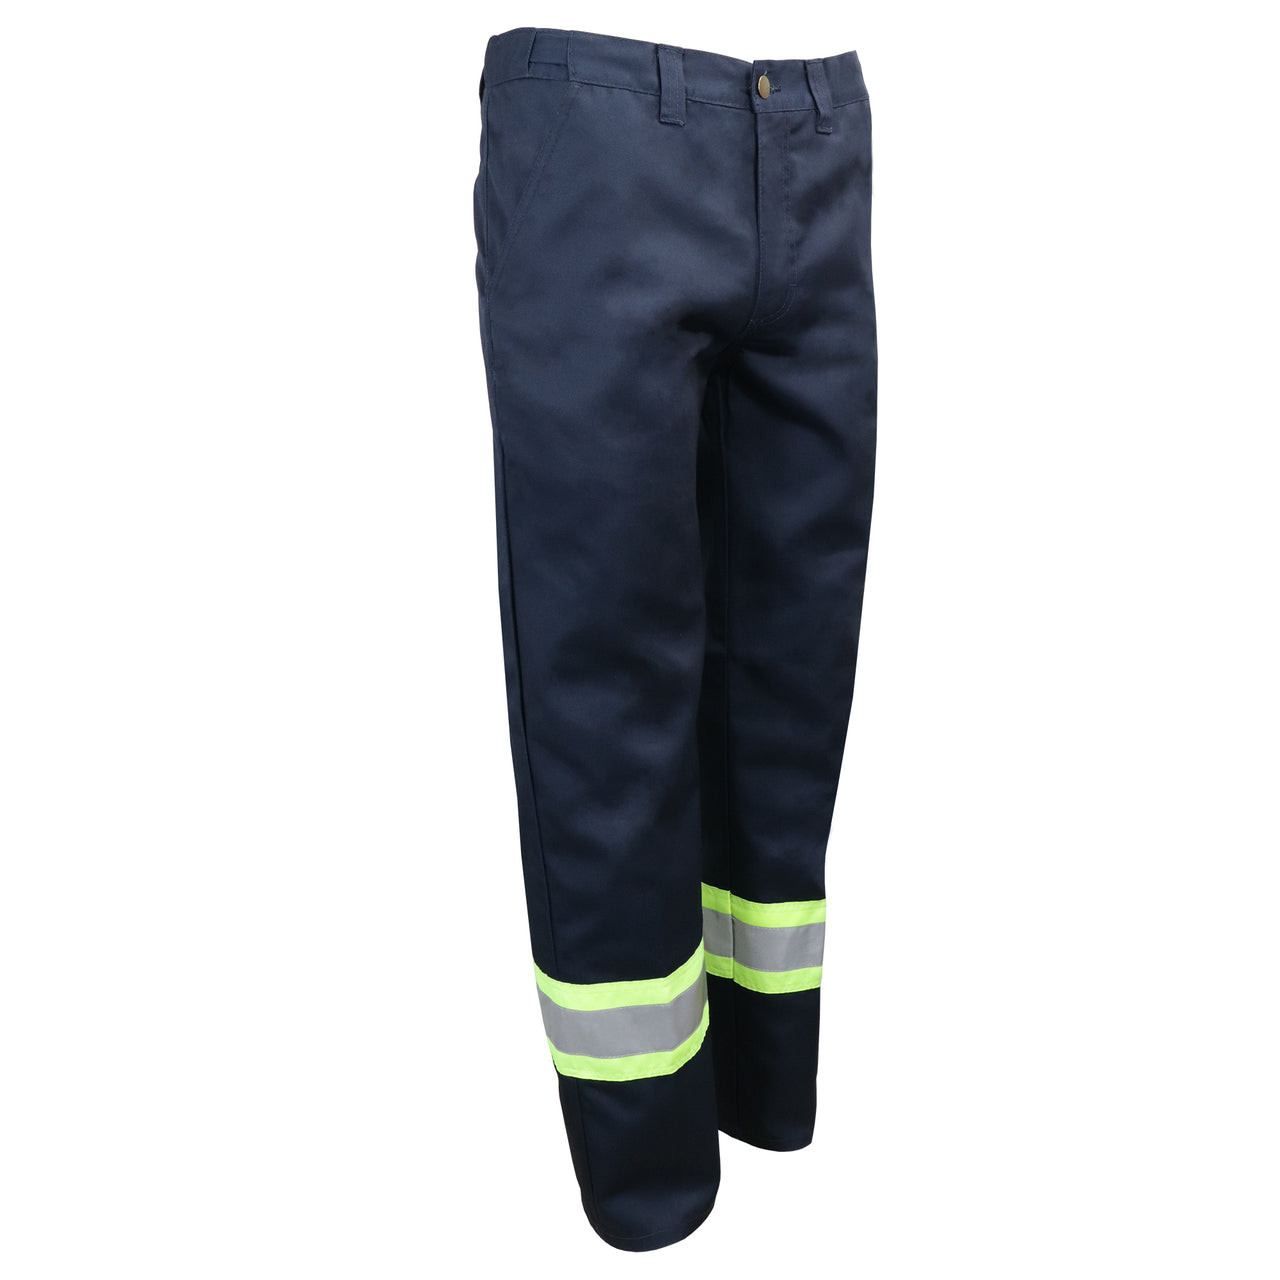 MRB-777X4 - PANTALON DE TRAVAIL (TAILLE FLEXIBLE)||MRB-777X4 - WORKWEAR PANT (FLEXIBLE WAIST)